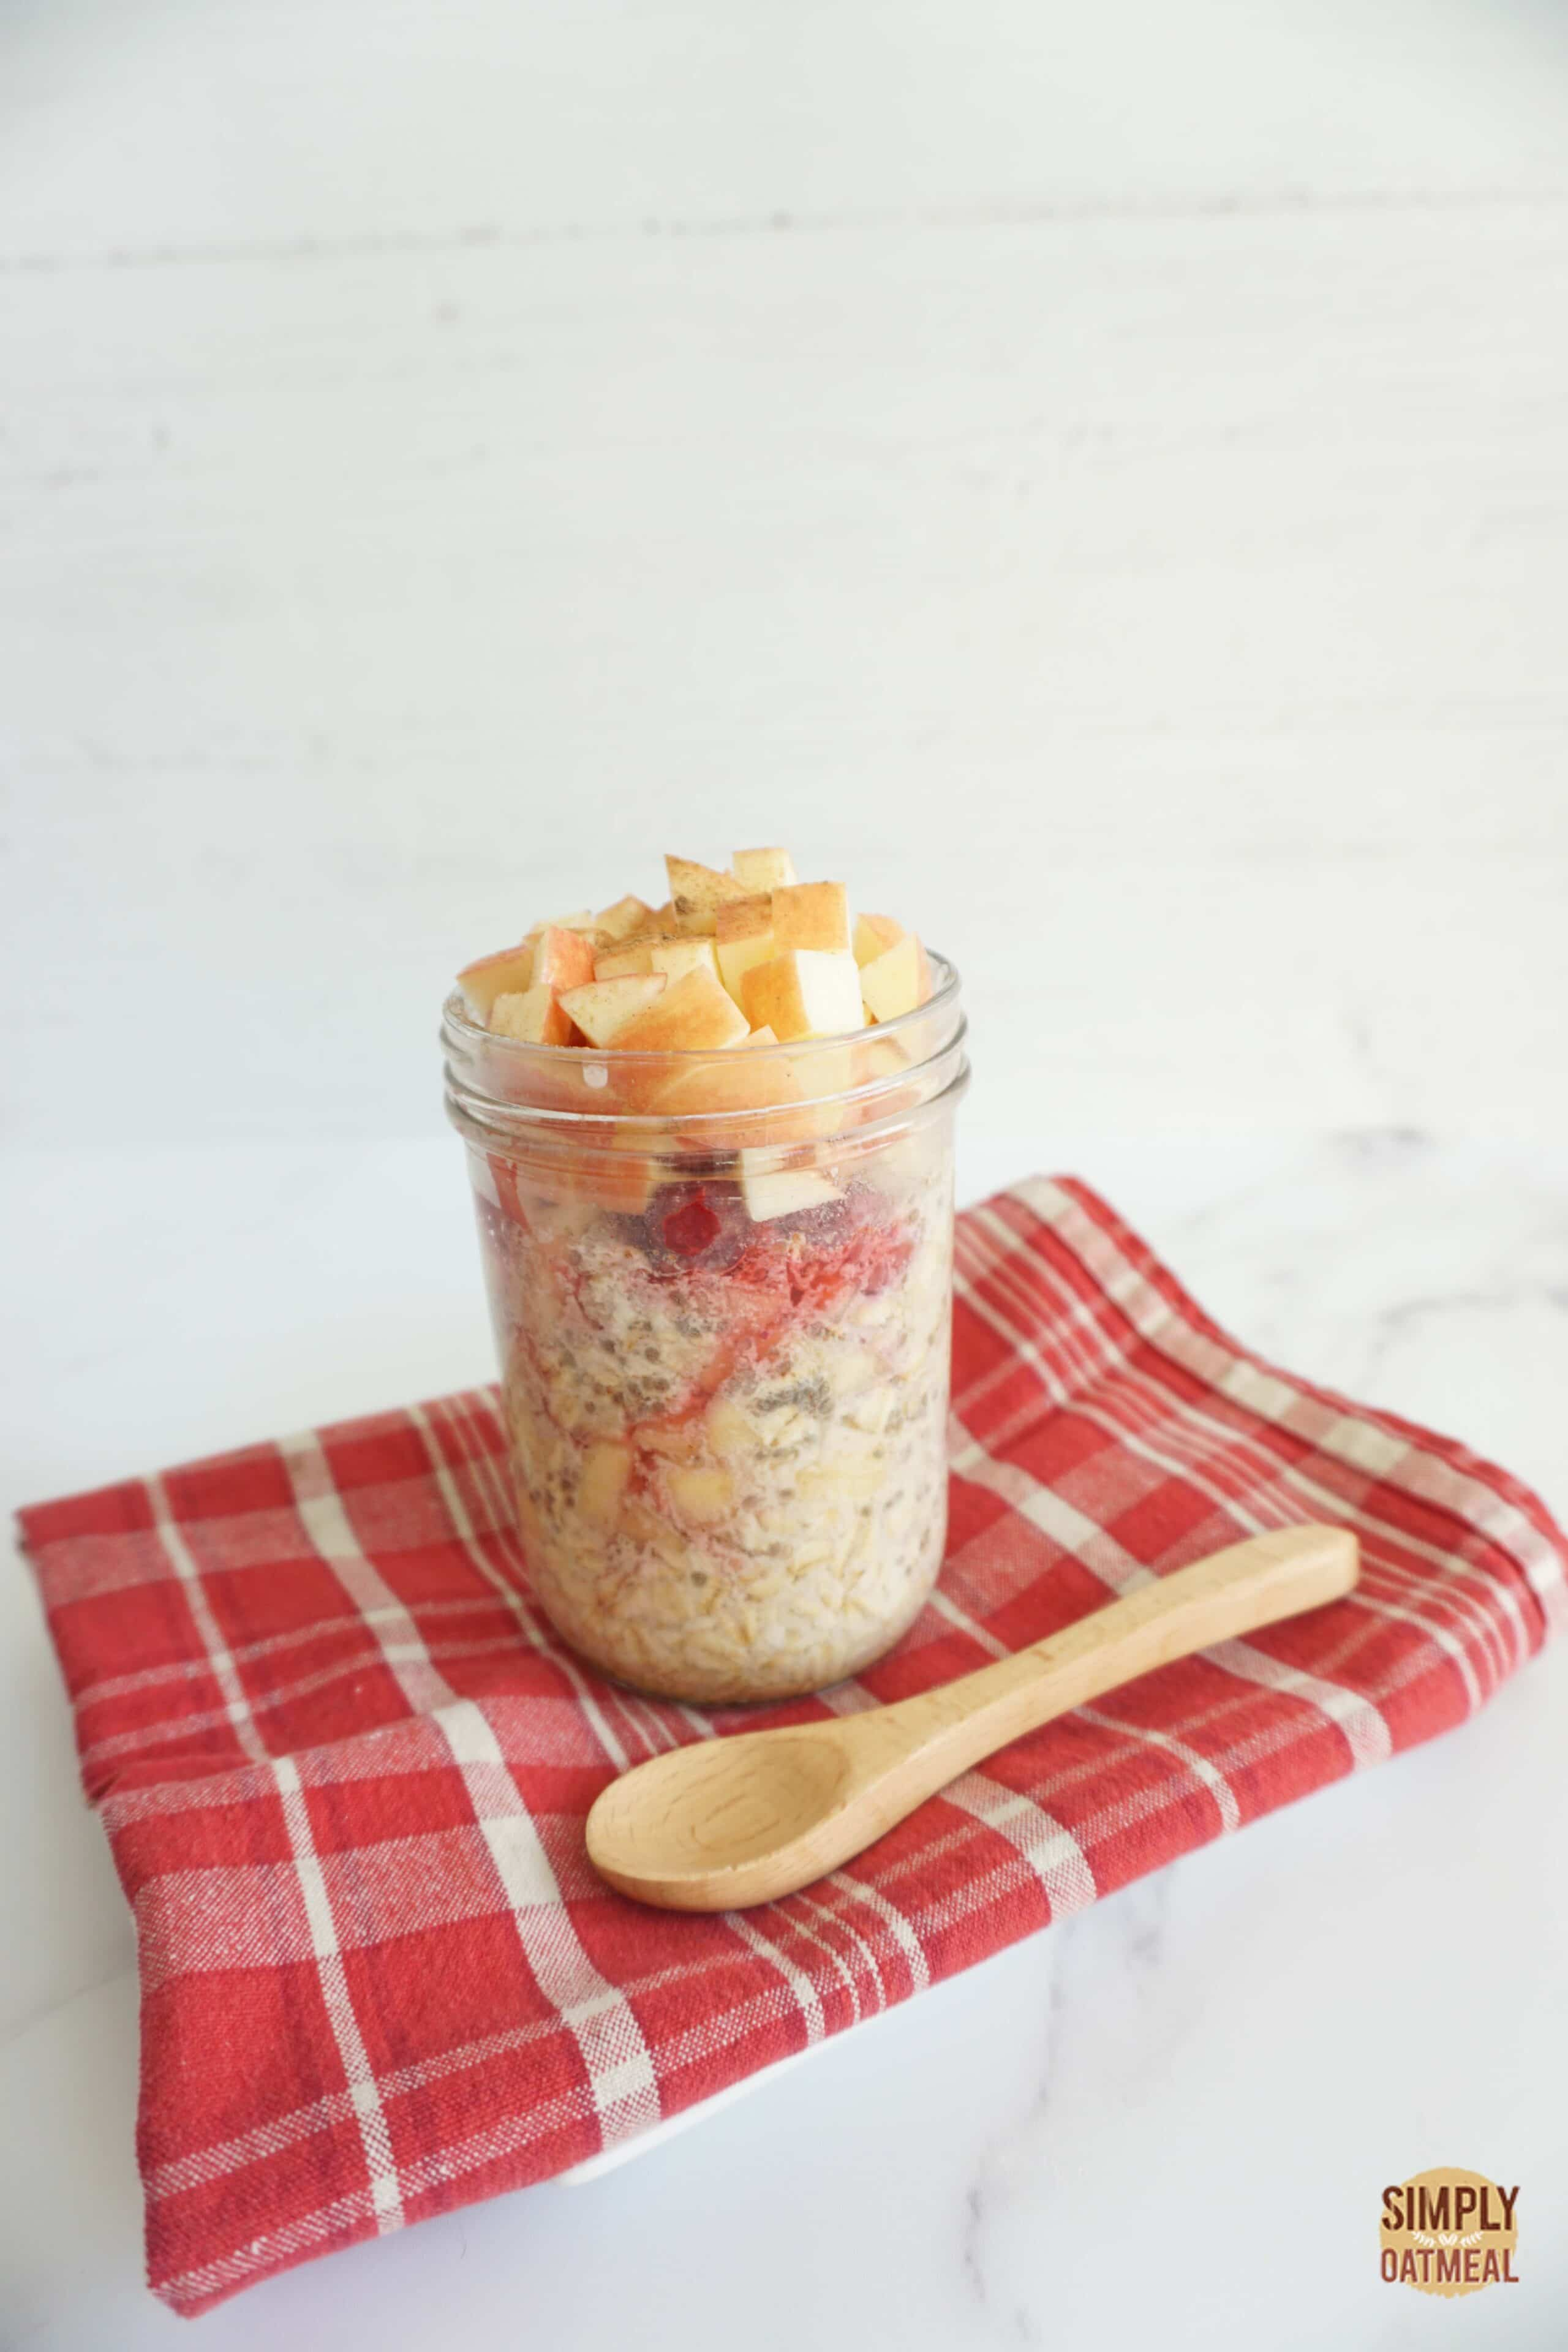 Apple raspberry overnight oats served in a mason jar with a spoon on the side